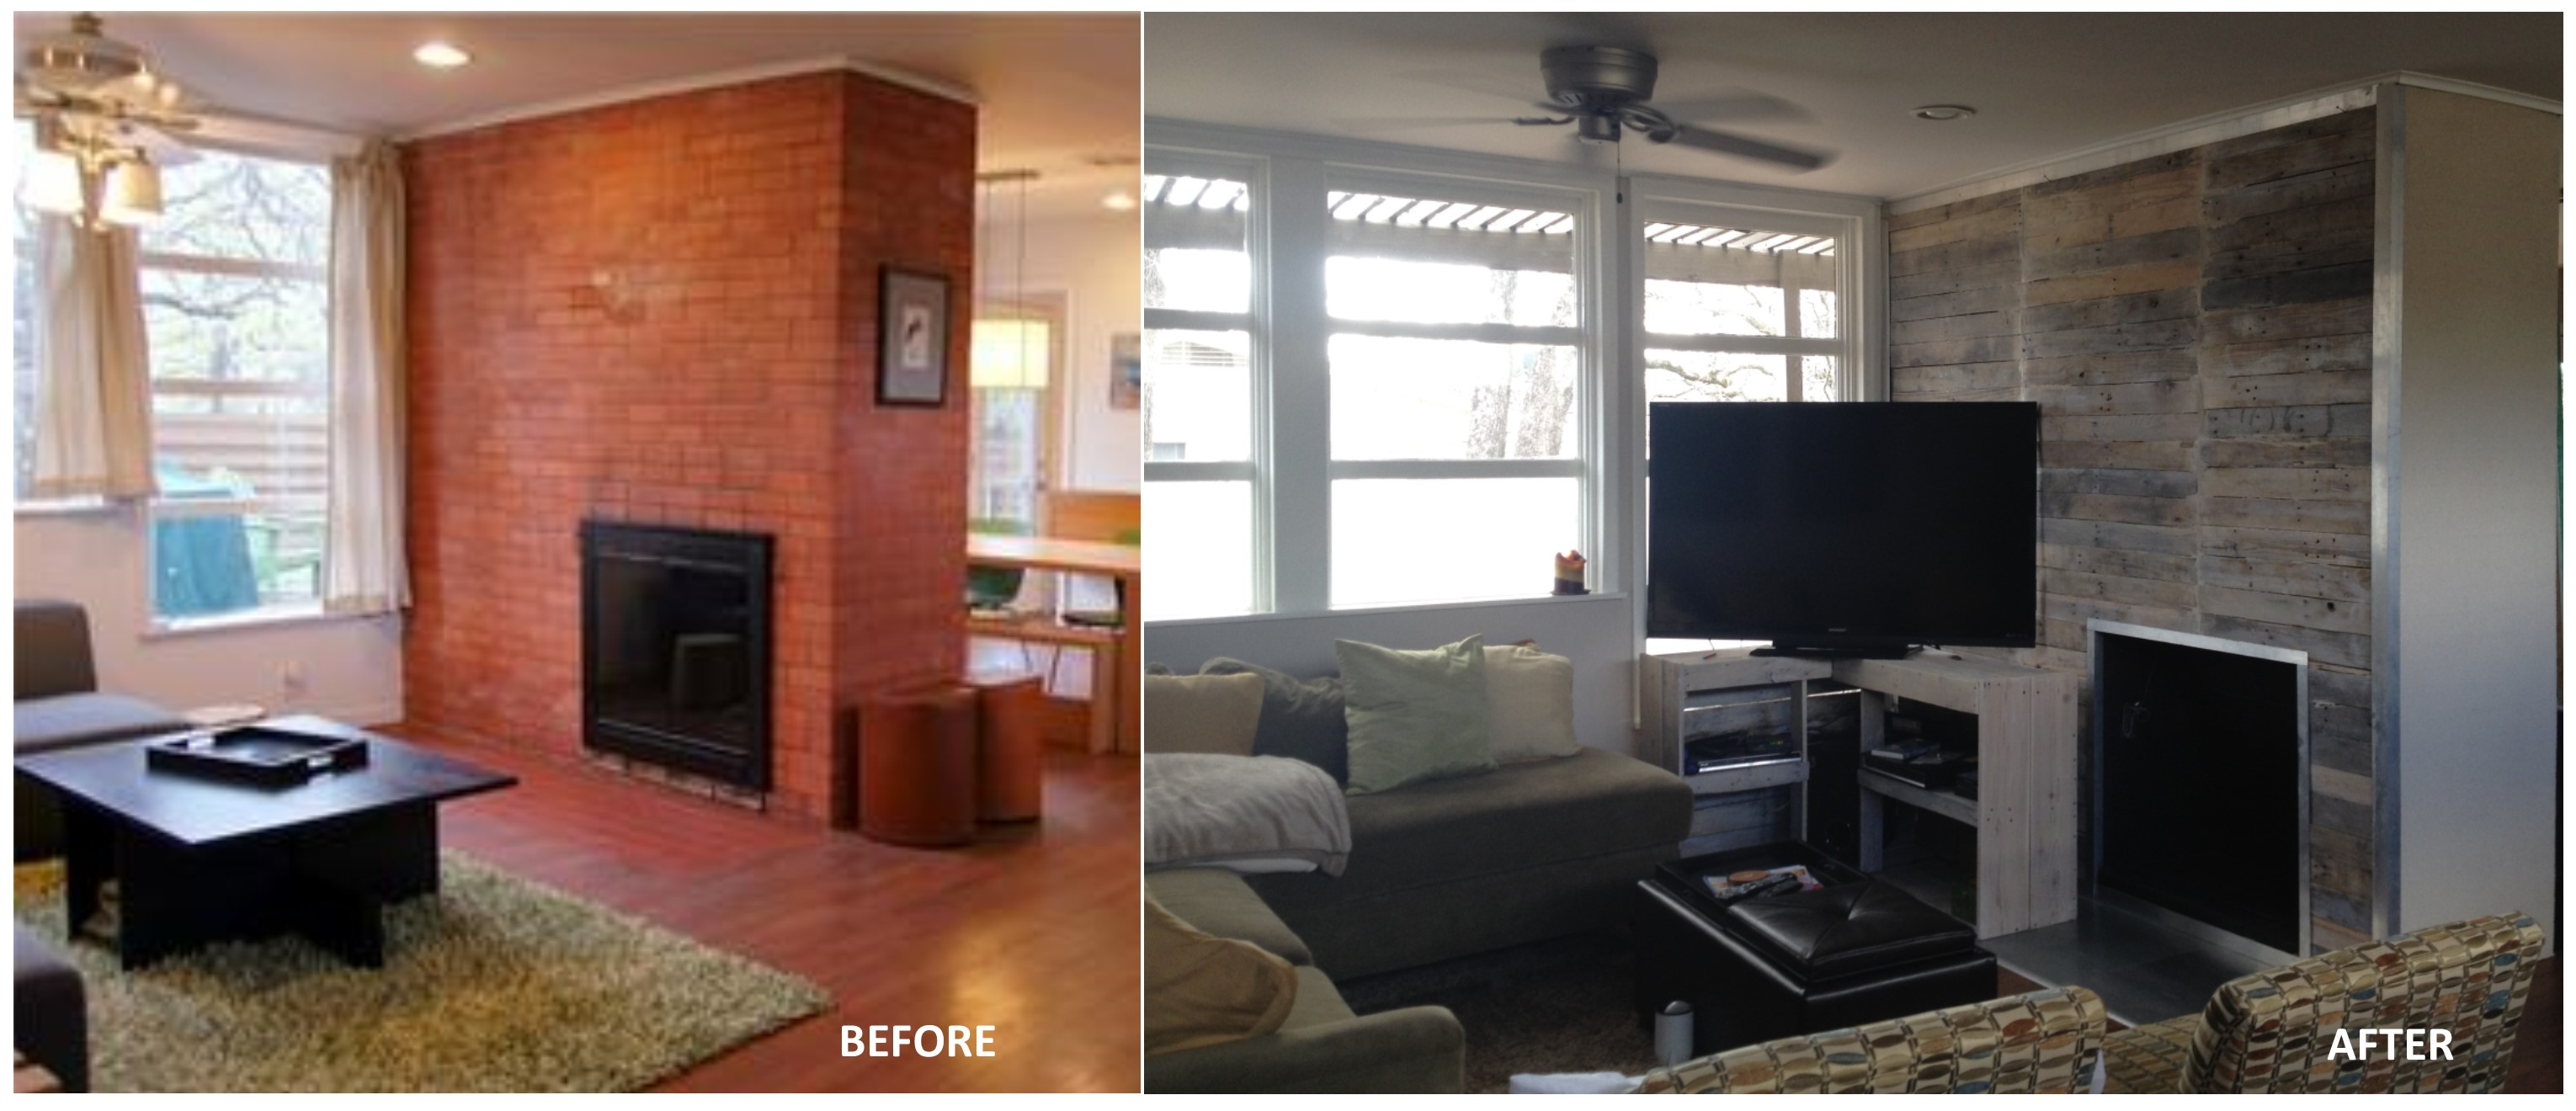 easily how boring around faux resurfacing resurface resurfaced blog a and after to with photo before creative behind quickly the drywall look panels fireplace